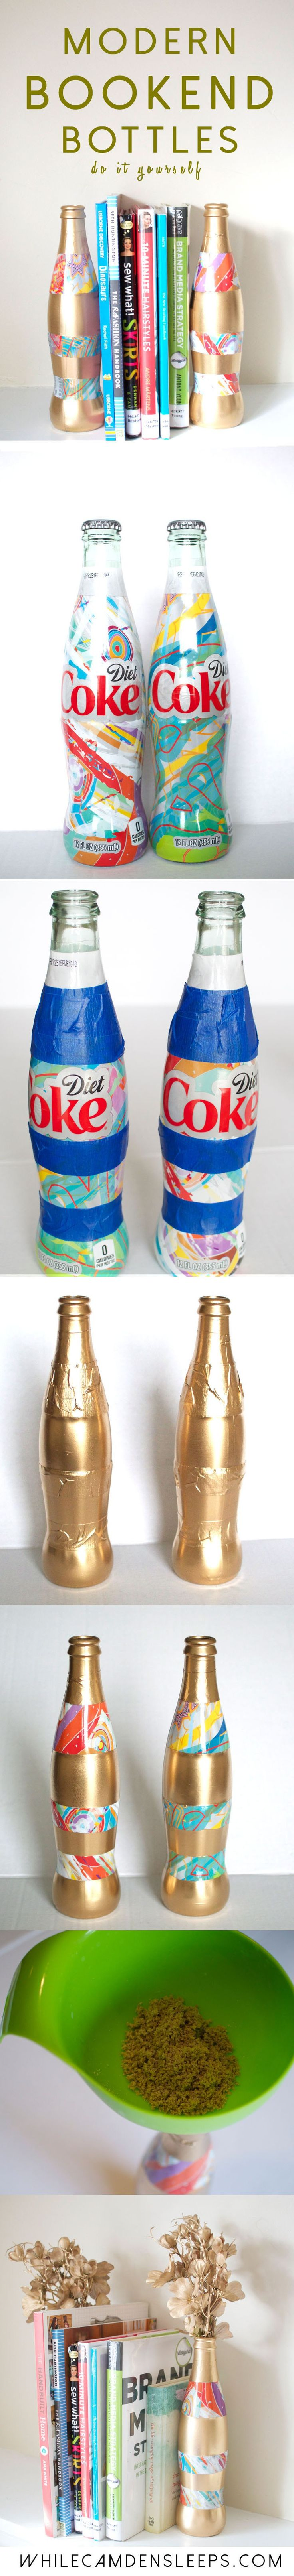 DIY Modern and Eclectic Bookend Bottles using NEW Diet Coke IT'S MINE bottles from @walmart #itsmymasterpiece #ad